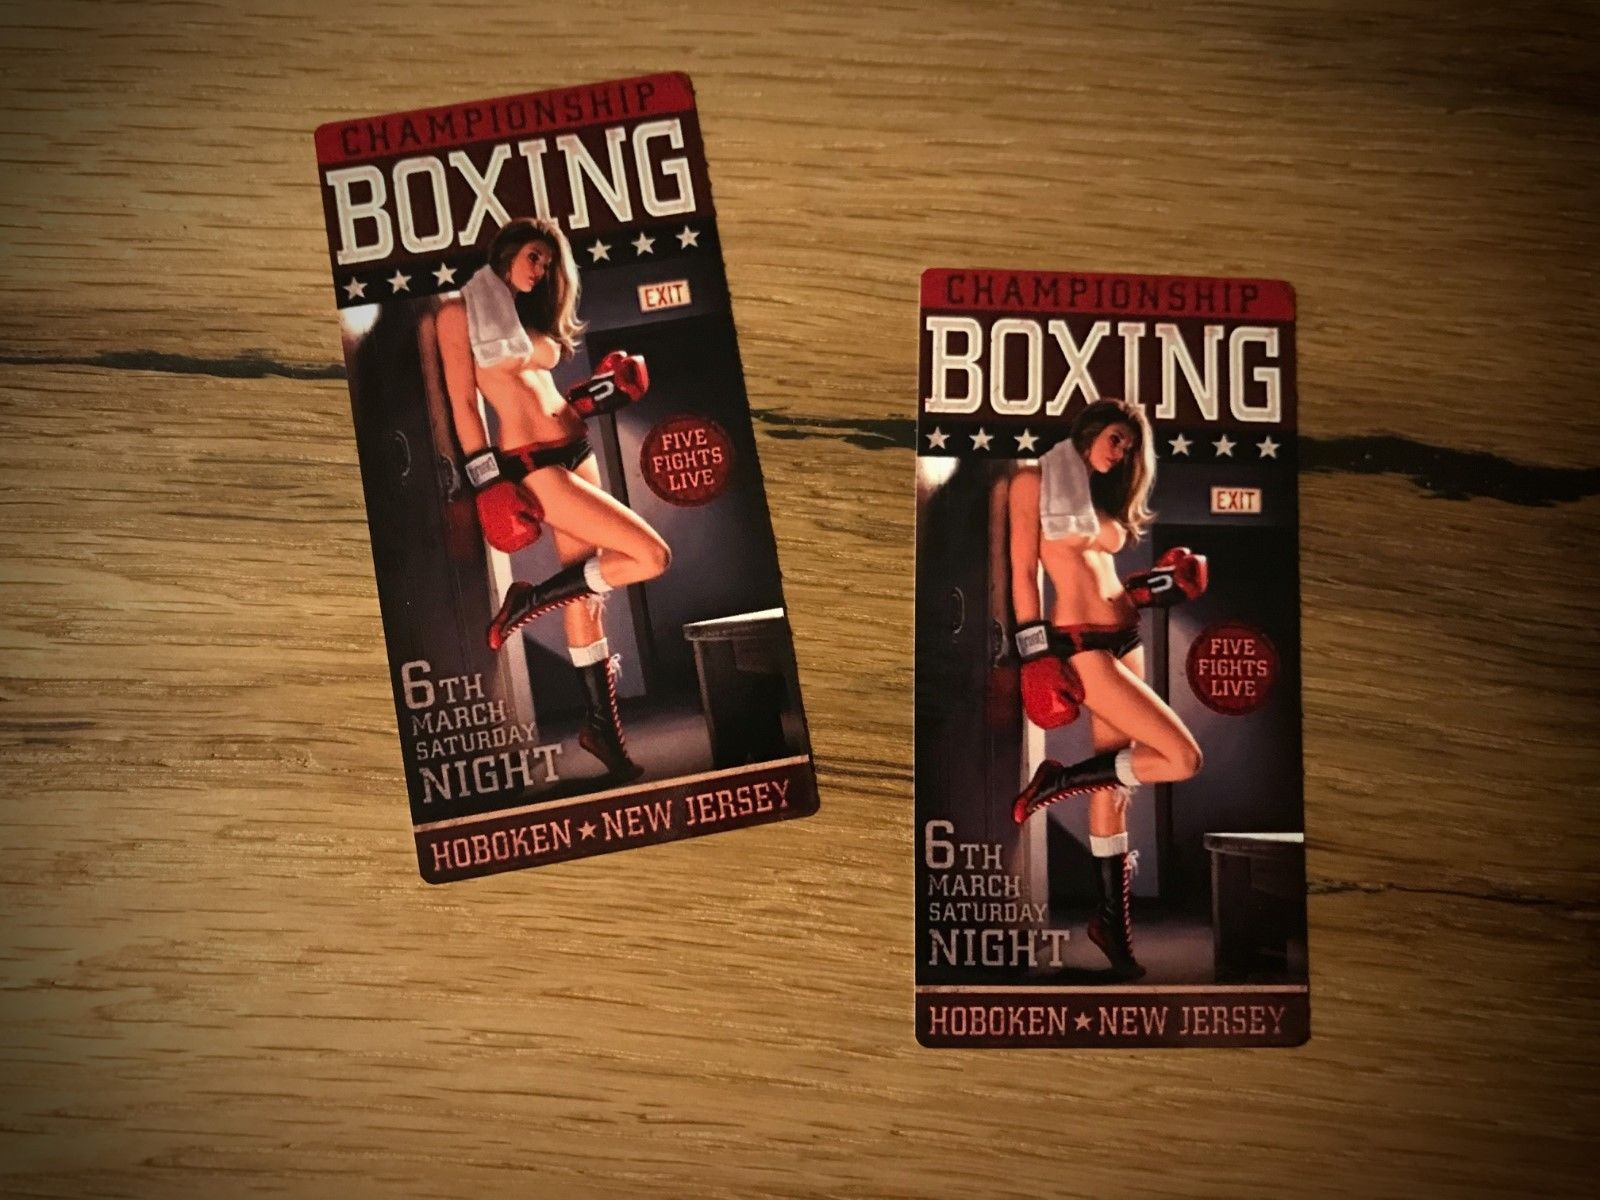 Boxing Sticker Box Club Vintage Girl Tuning Car Motorcycle Vintage Cool # 225